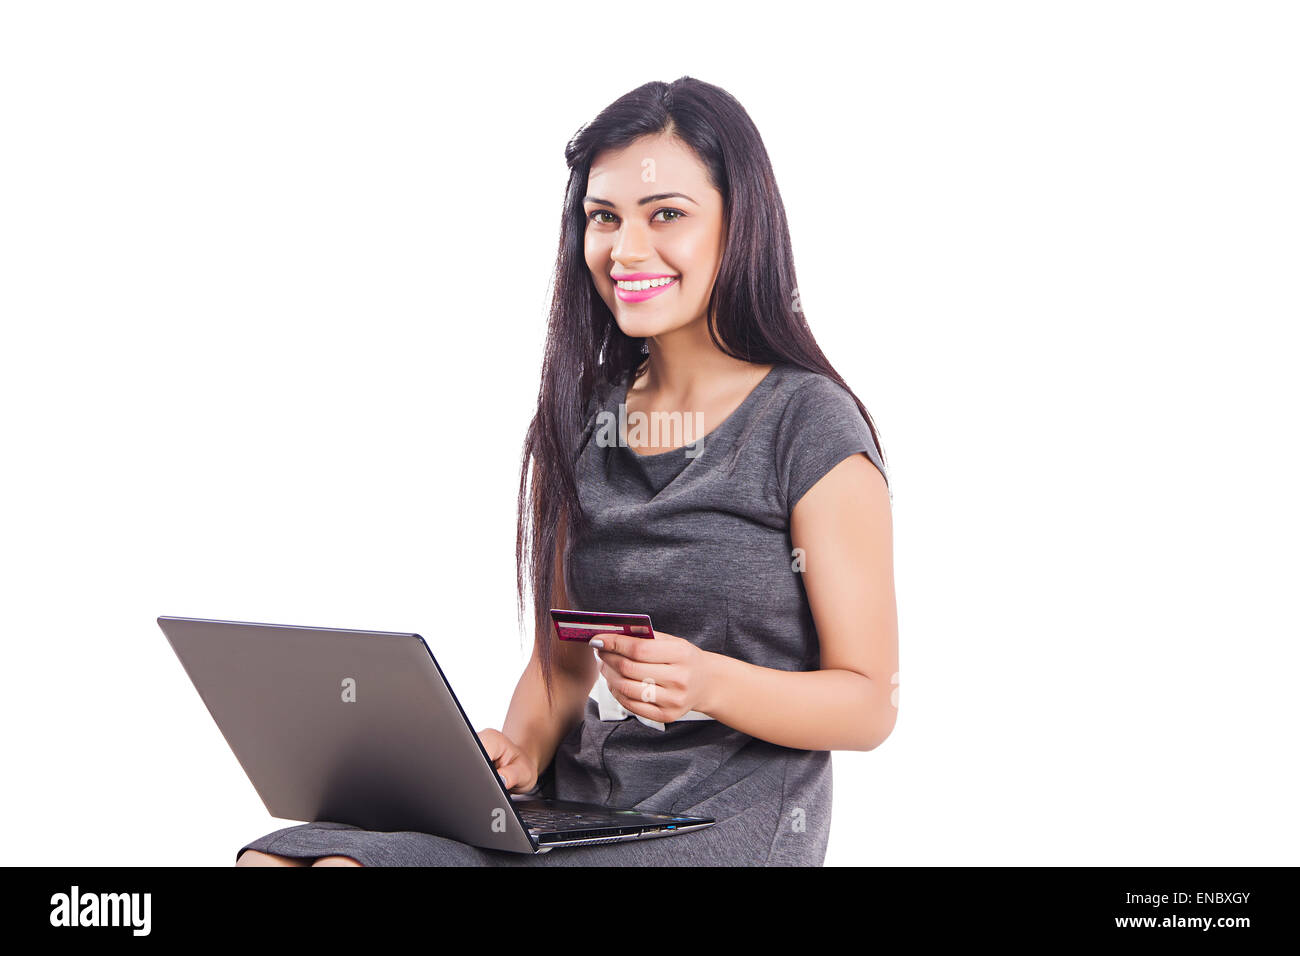 1 indian business woman laptop credit card shoping stock photo 1 indian business woman laptop credit card shoping reheart Images